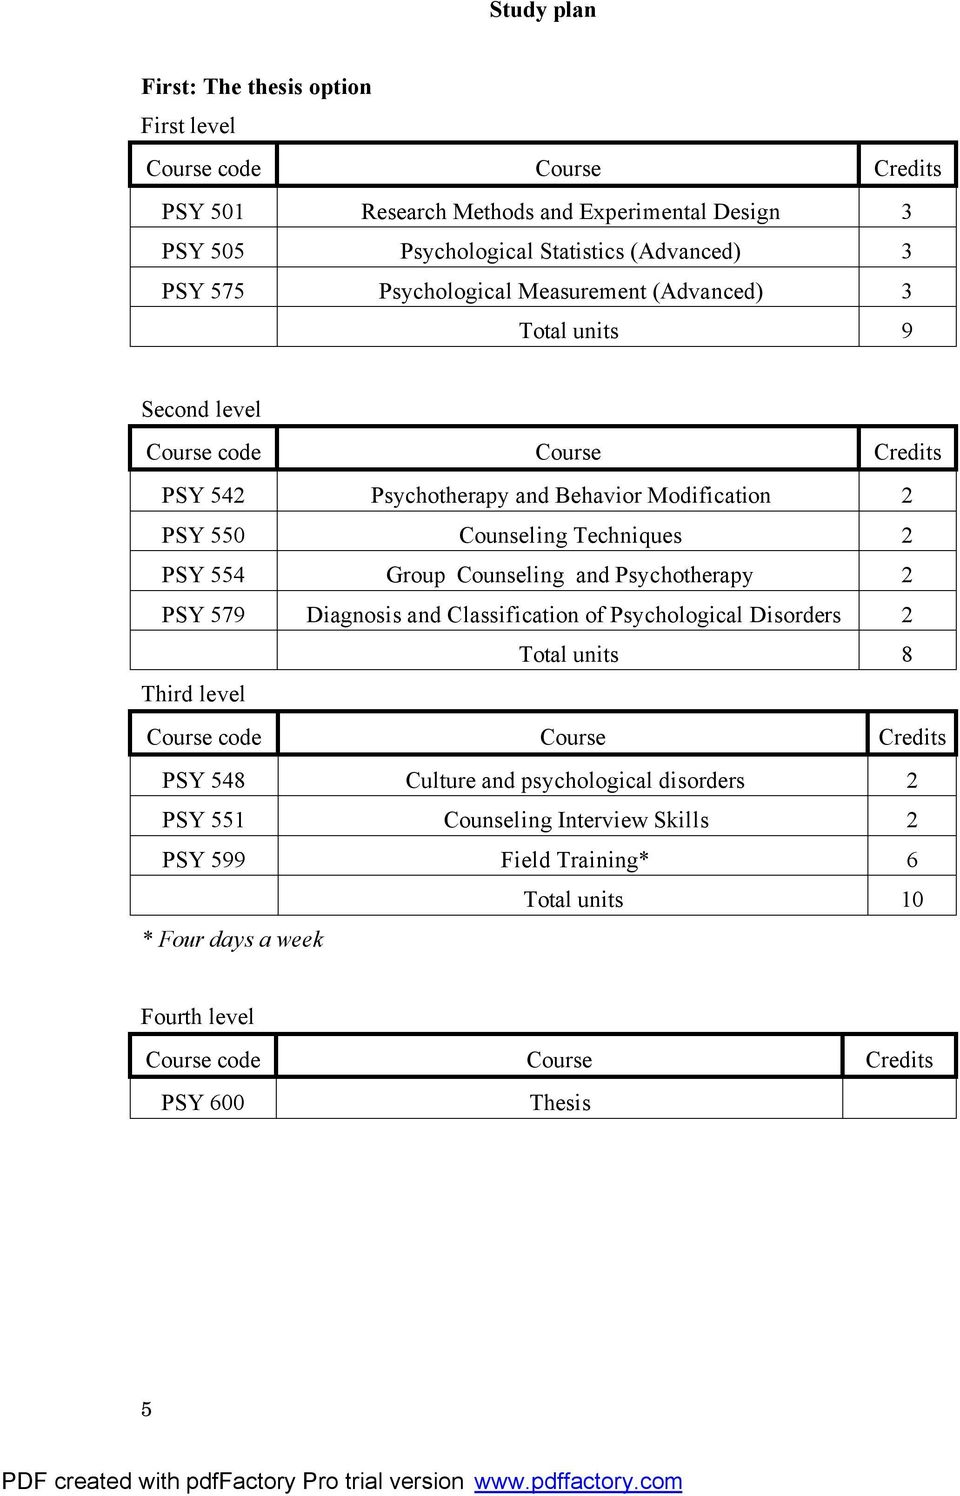 554 Group Counseling and Psychotherapy 2 PSY 579 Diagnosis and Classification of Psychological Disorders 2 Total units 8 Third level PSY 548 Culture and